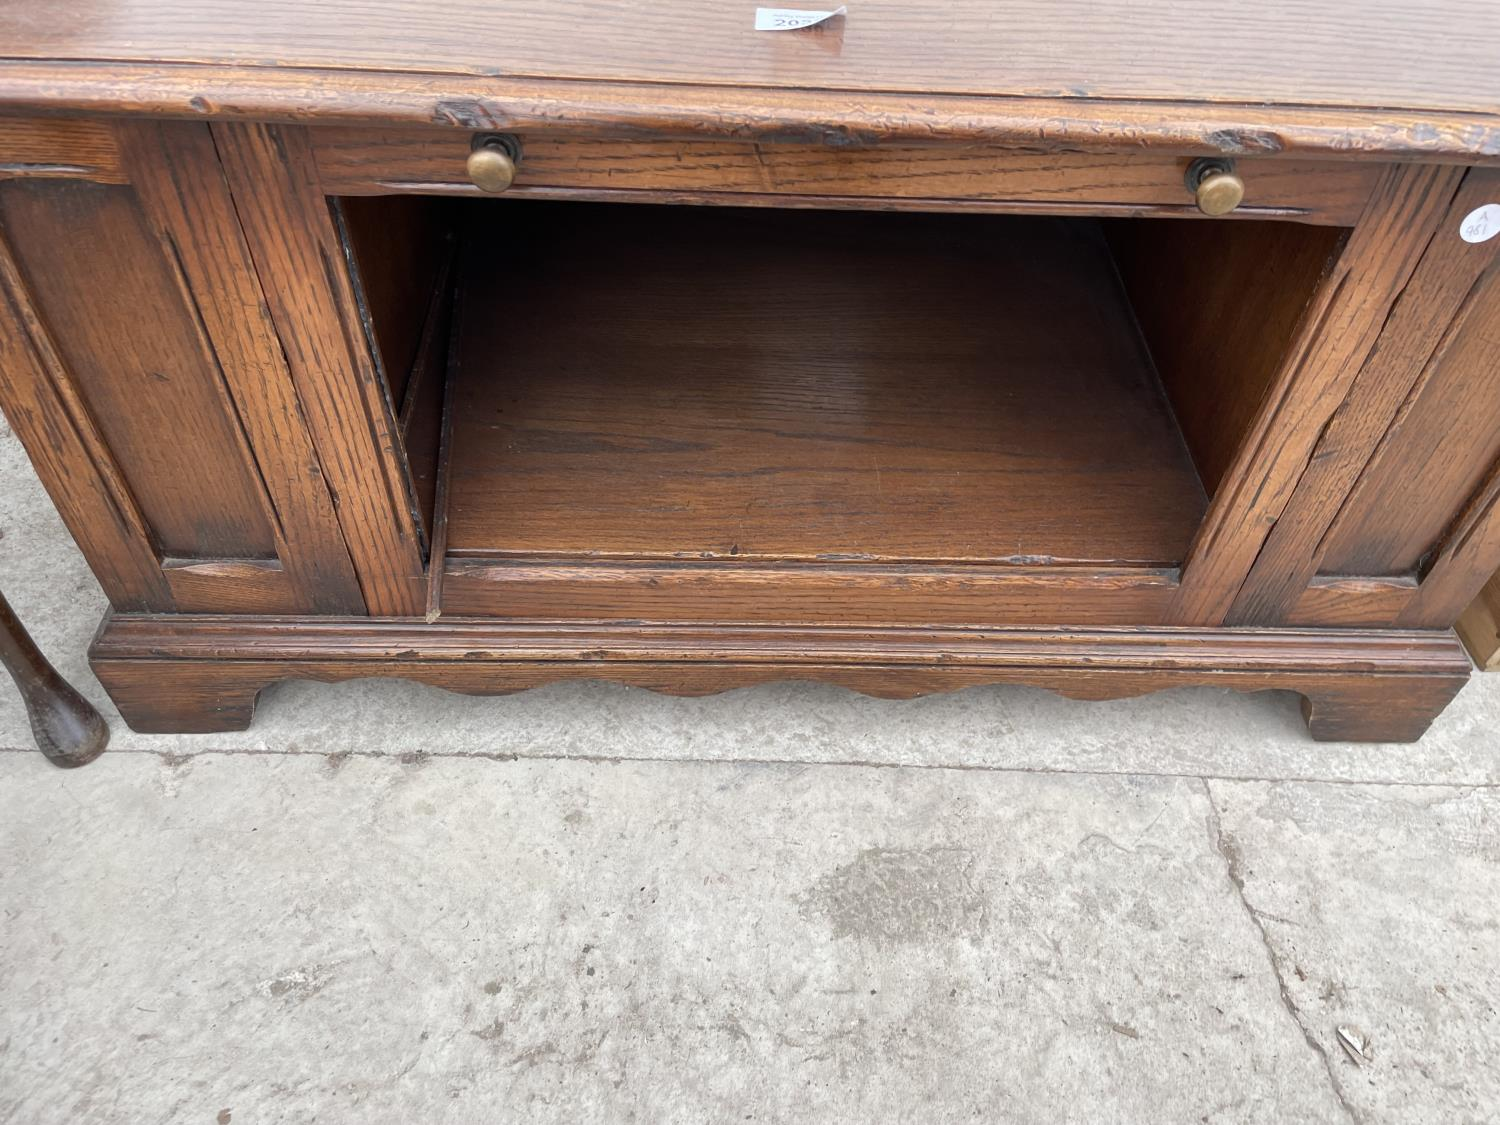 AN OAK TV/VIDEO STAND - Image 3 of 3